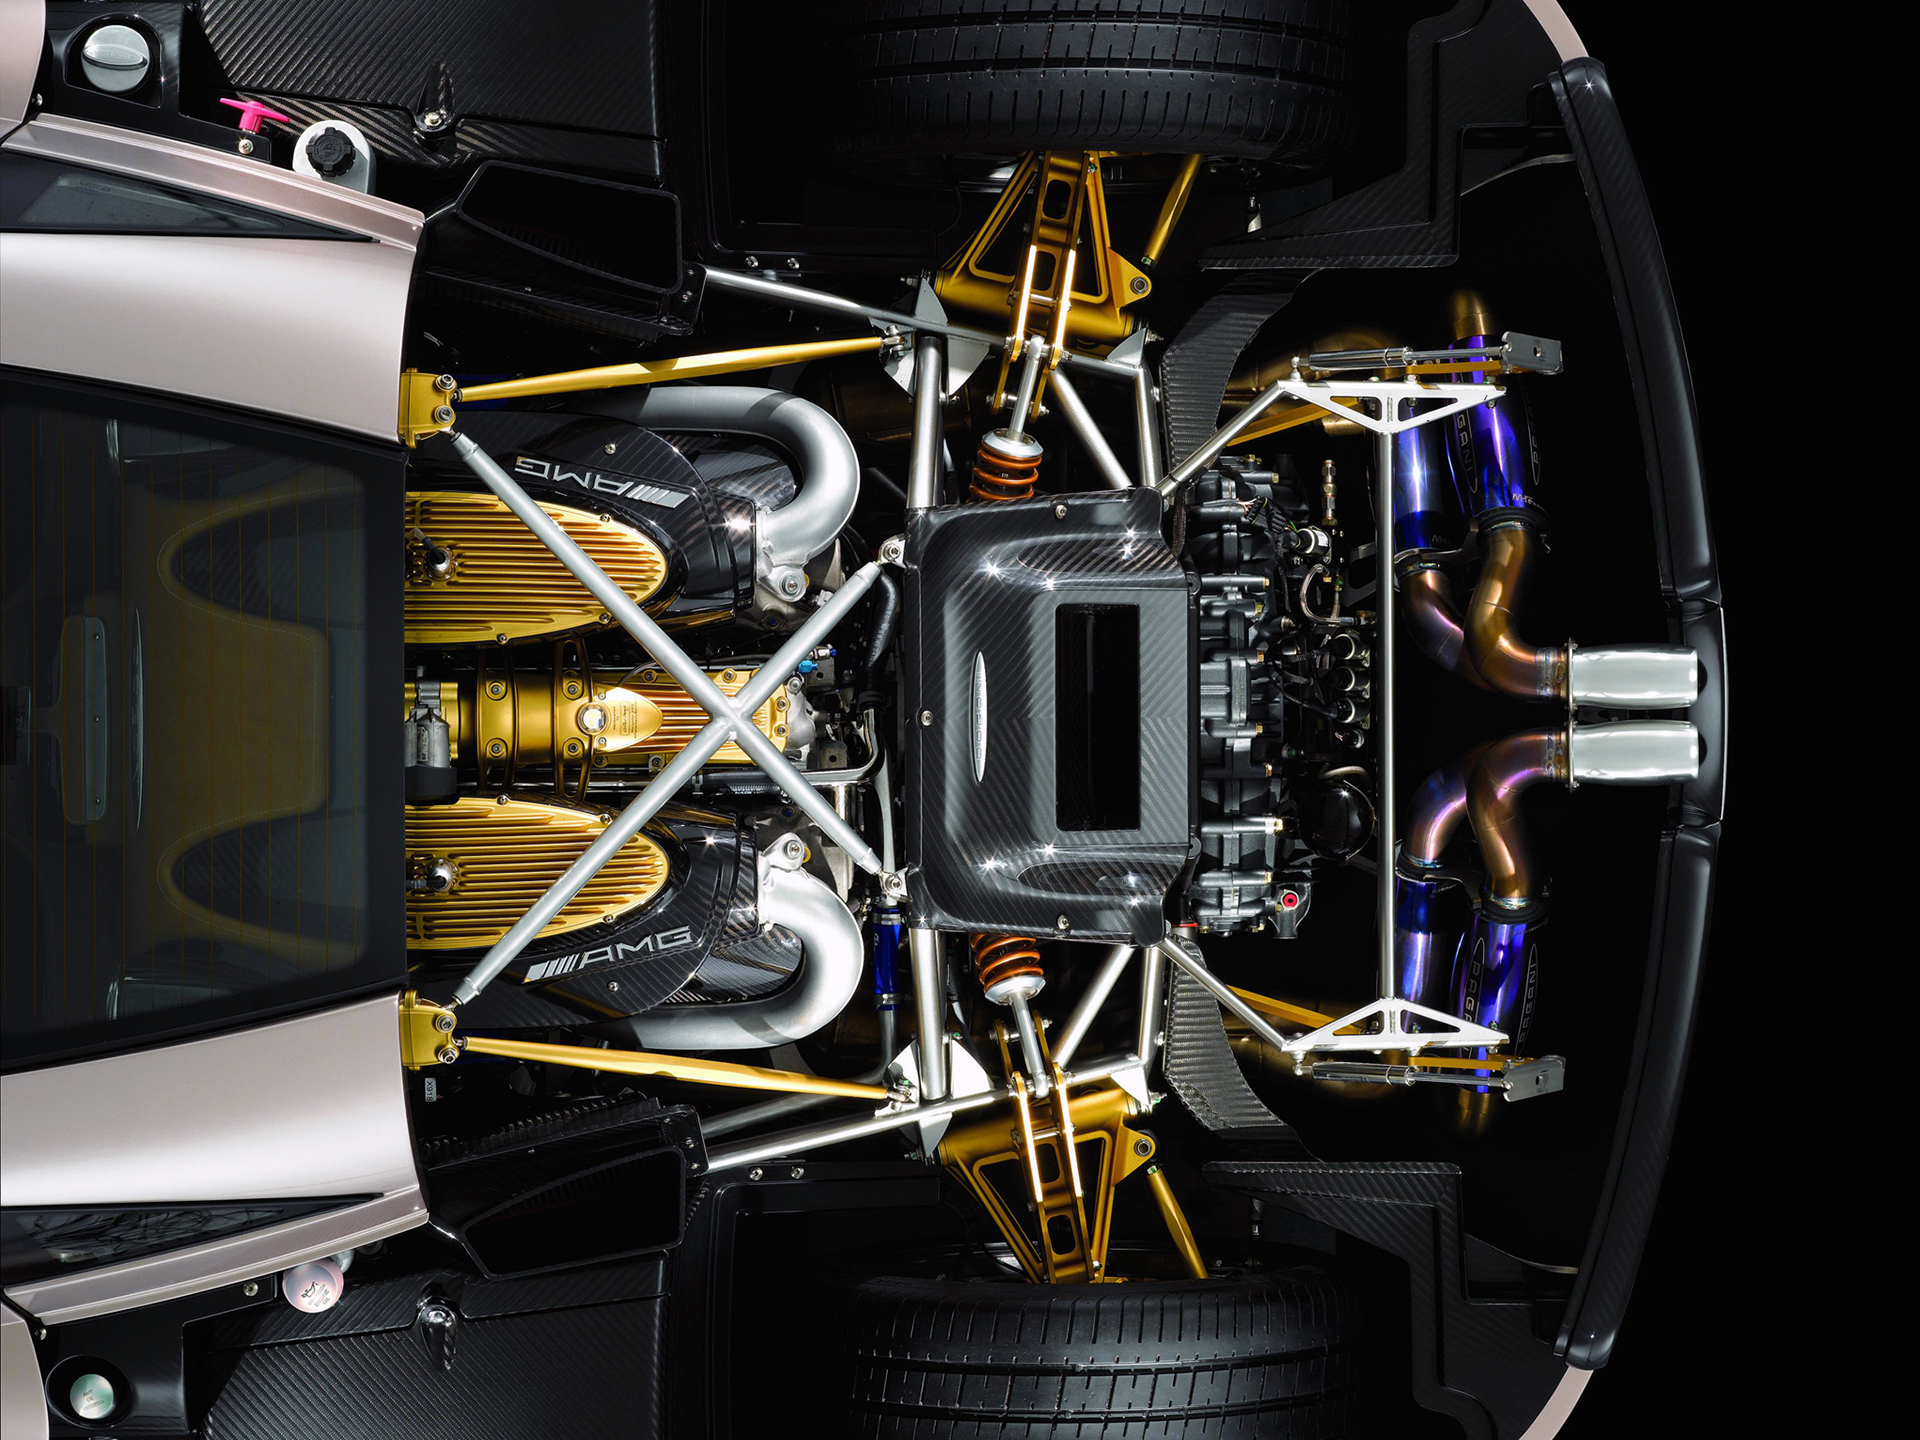 Pagani Huayra - 2018 - engine / moteur / Motoren -  AMG V12 - top view - under the hood